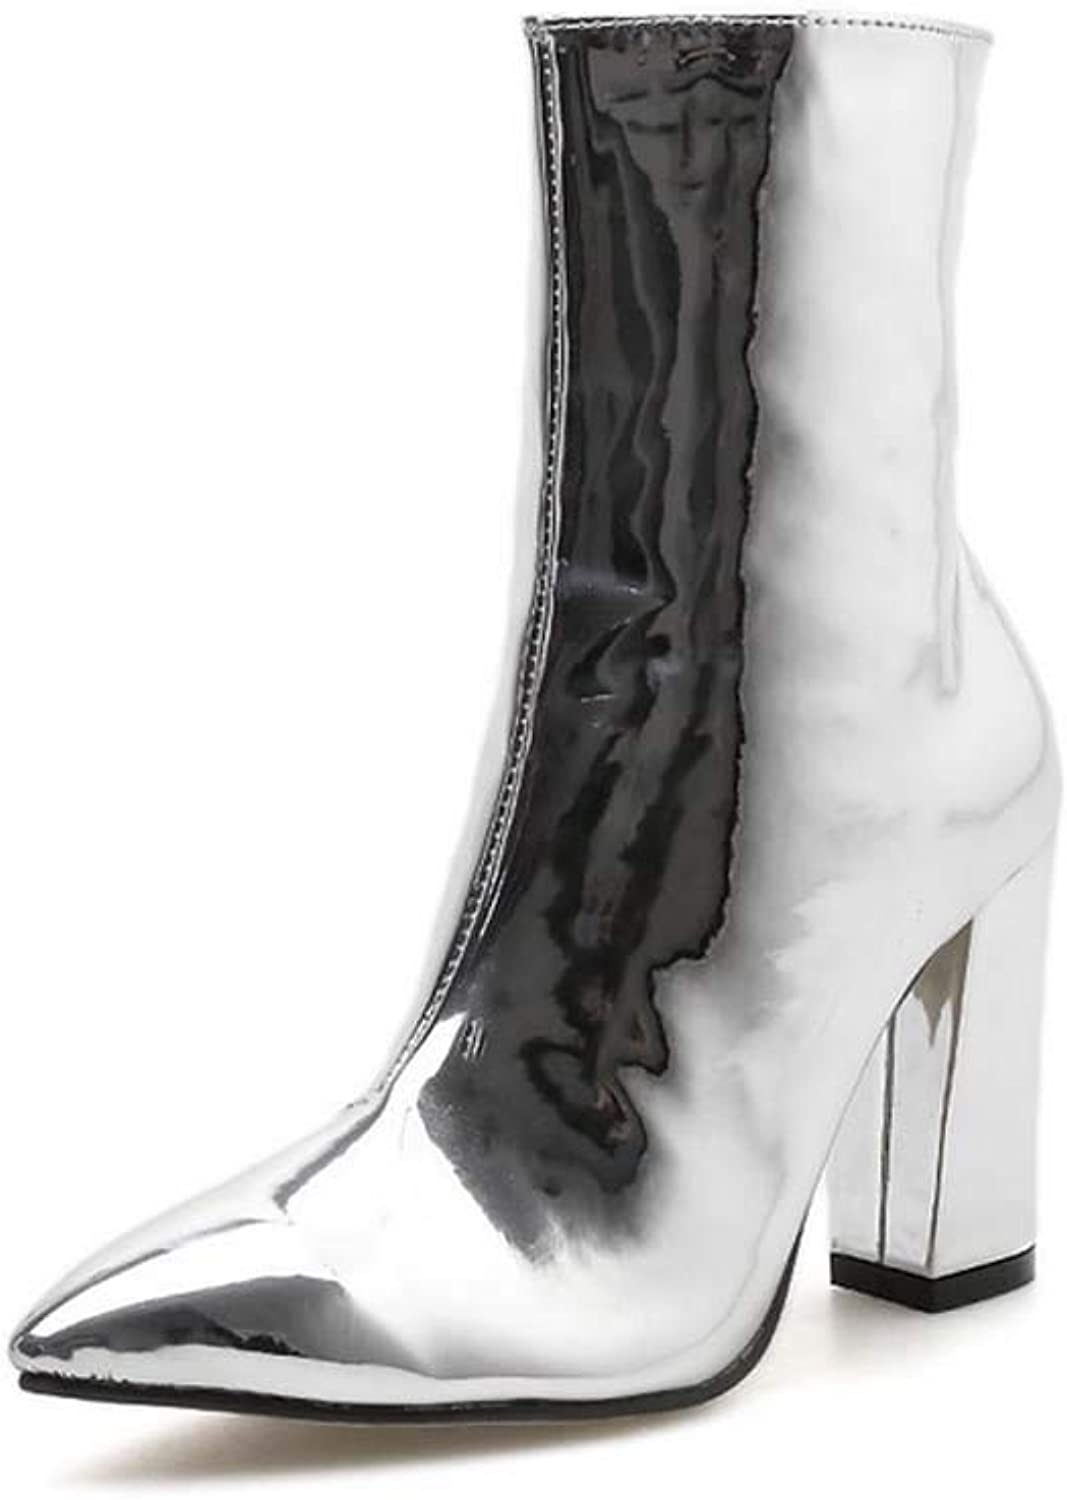 Women Pointed High Heel Boots 2018 Autumn Winter New Patent Leather Glossy Face Ankle Boots